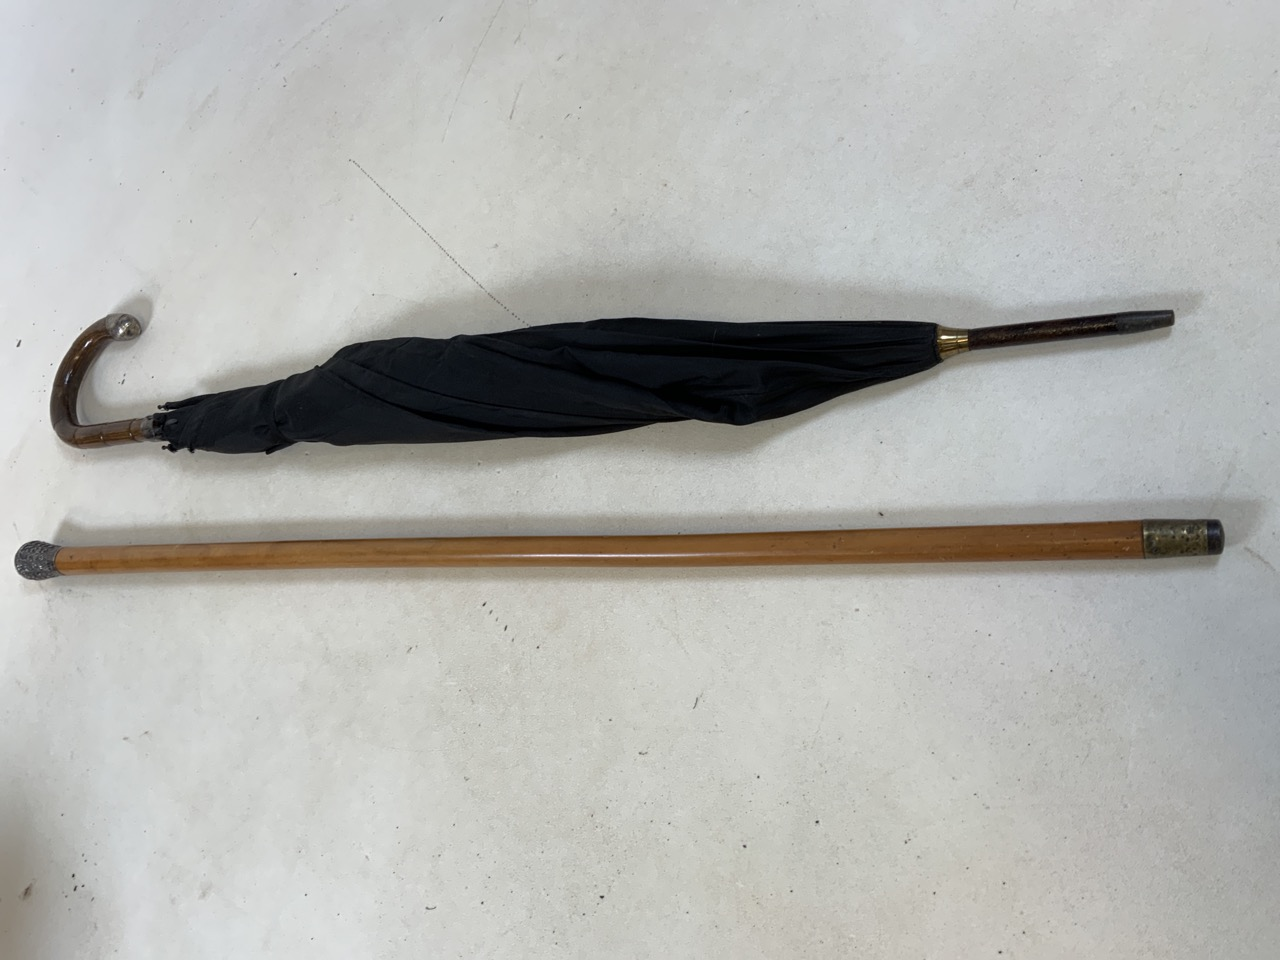 A white metal topped walking cane - decorative top featuring a peacock together with a vintage